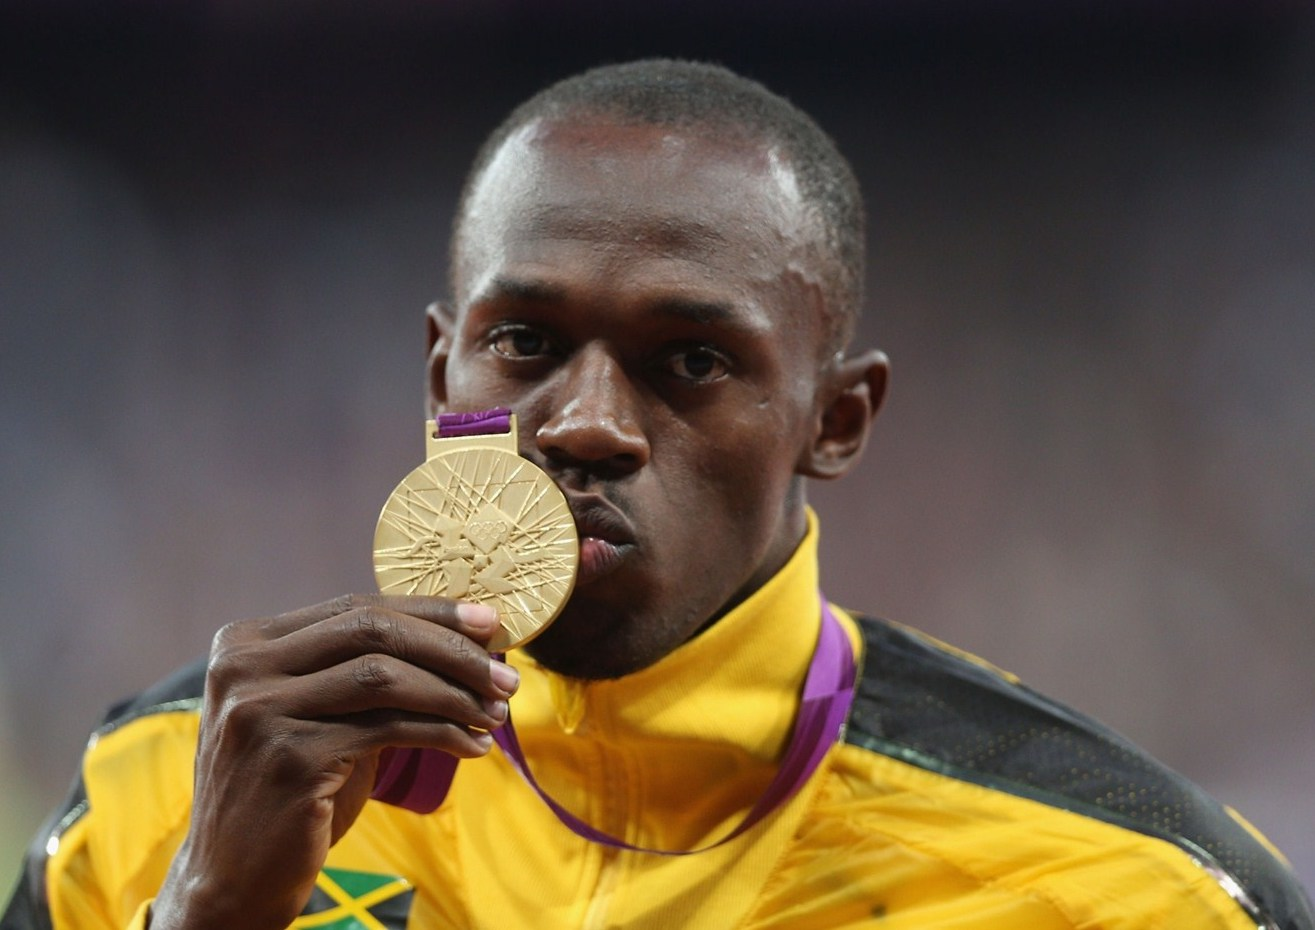 Usain Bolt Stripped Of Olympic Gold Medal For Teammates Doping